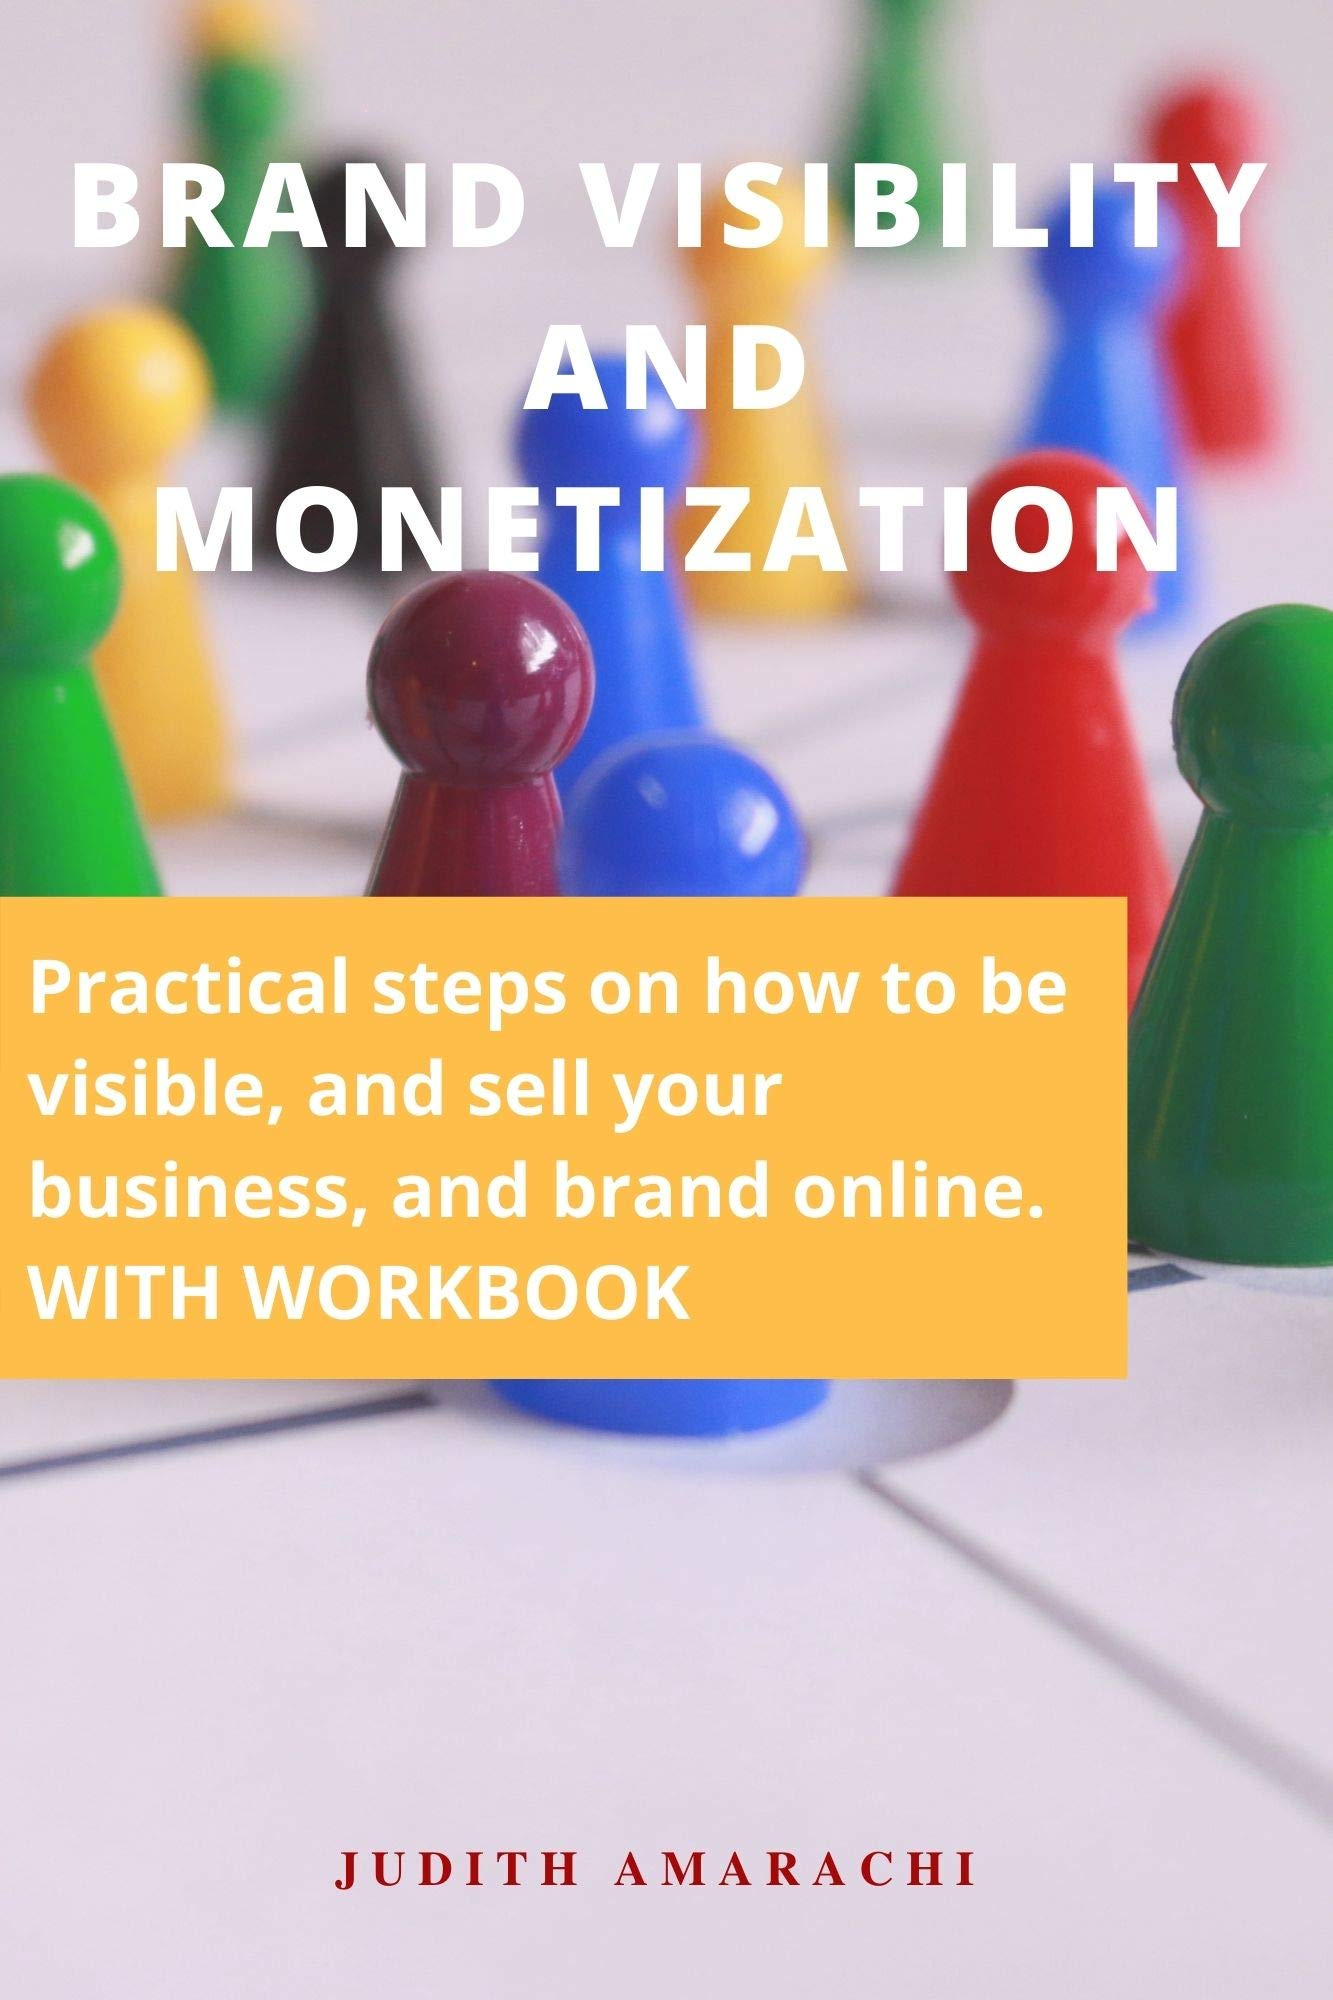 BRAND VISIBILITY AND MONETIZATION: Practical steps on how to be visible, and sell your business, and brand online. With workbook.